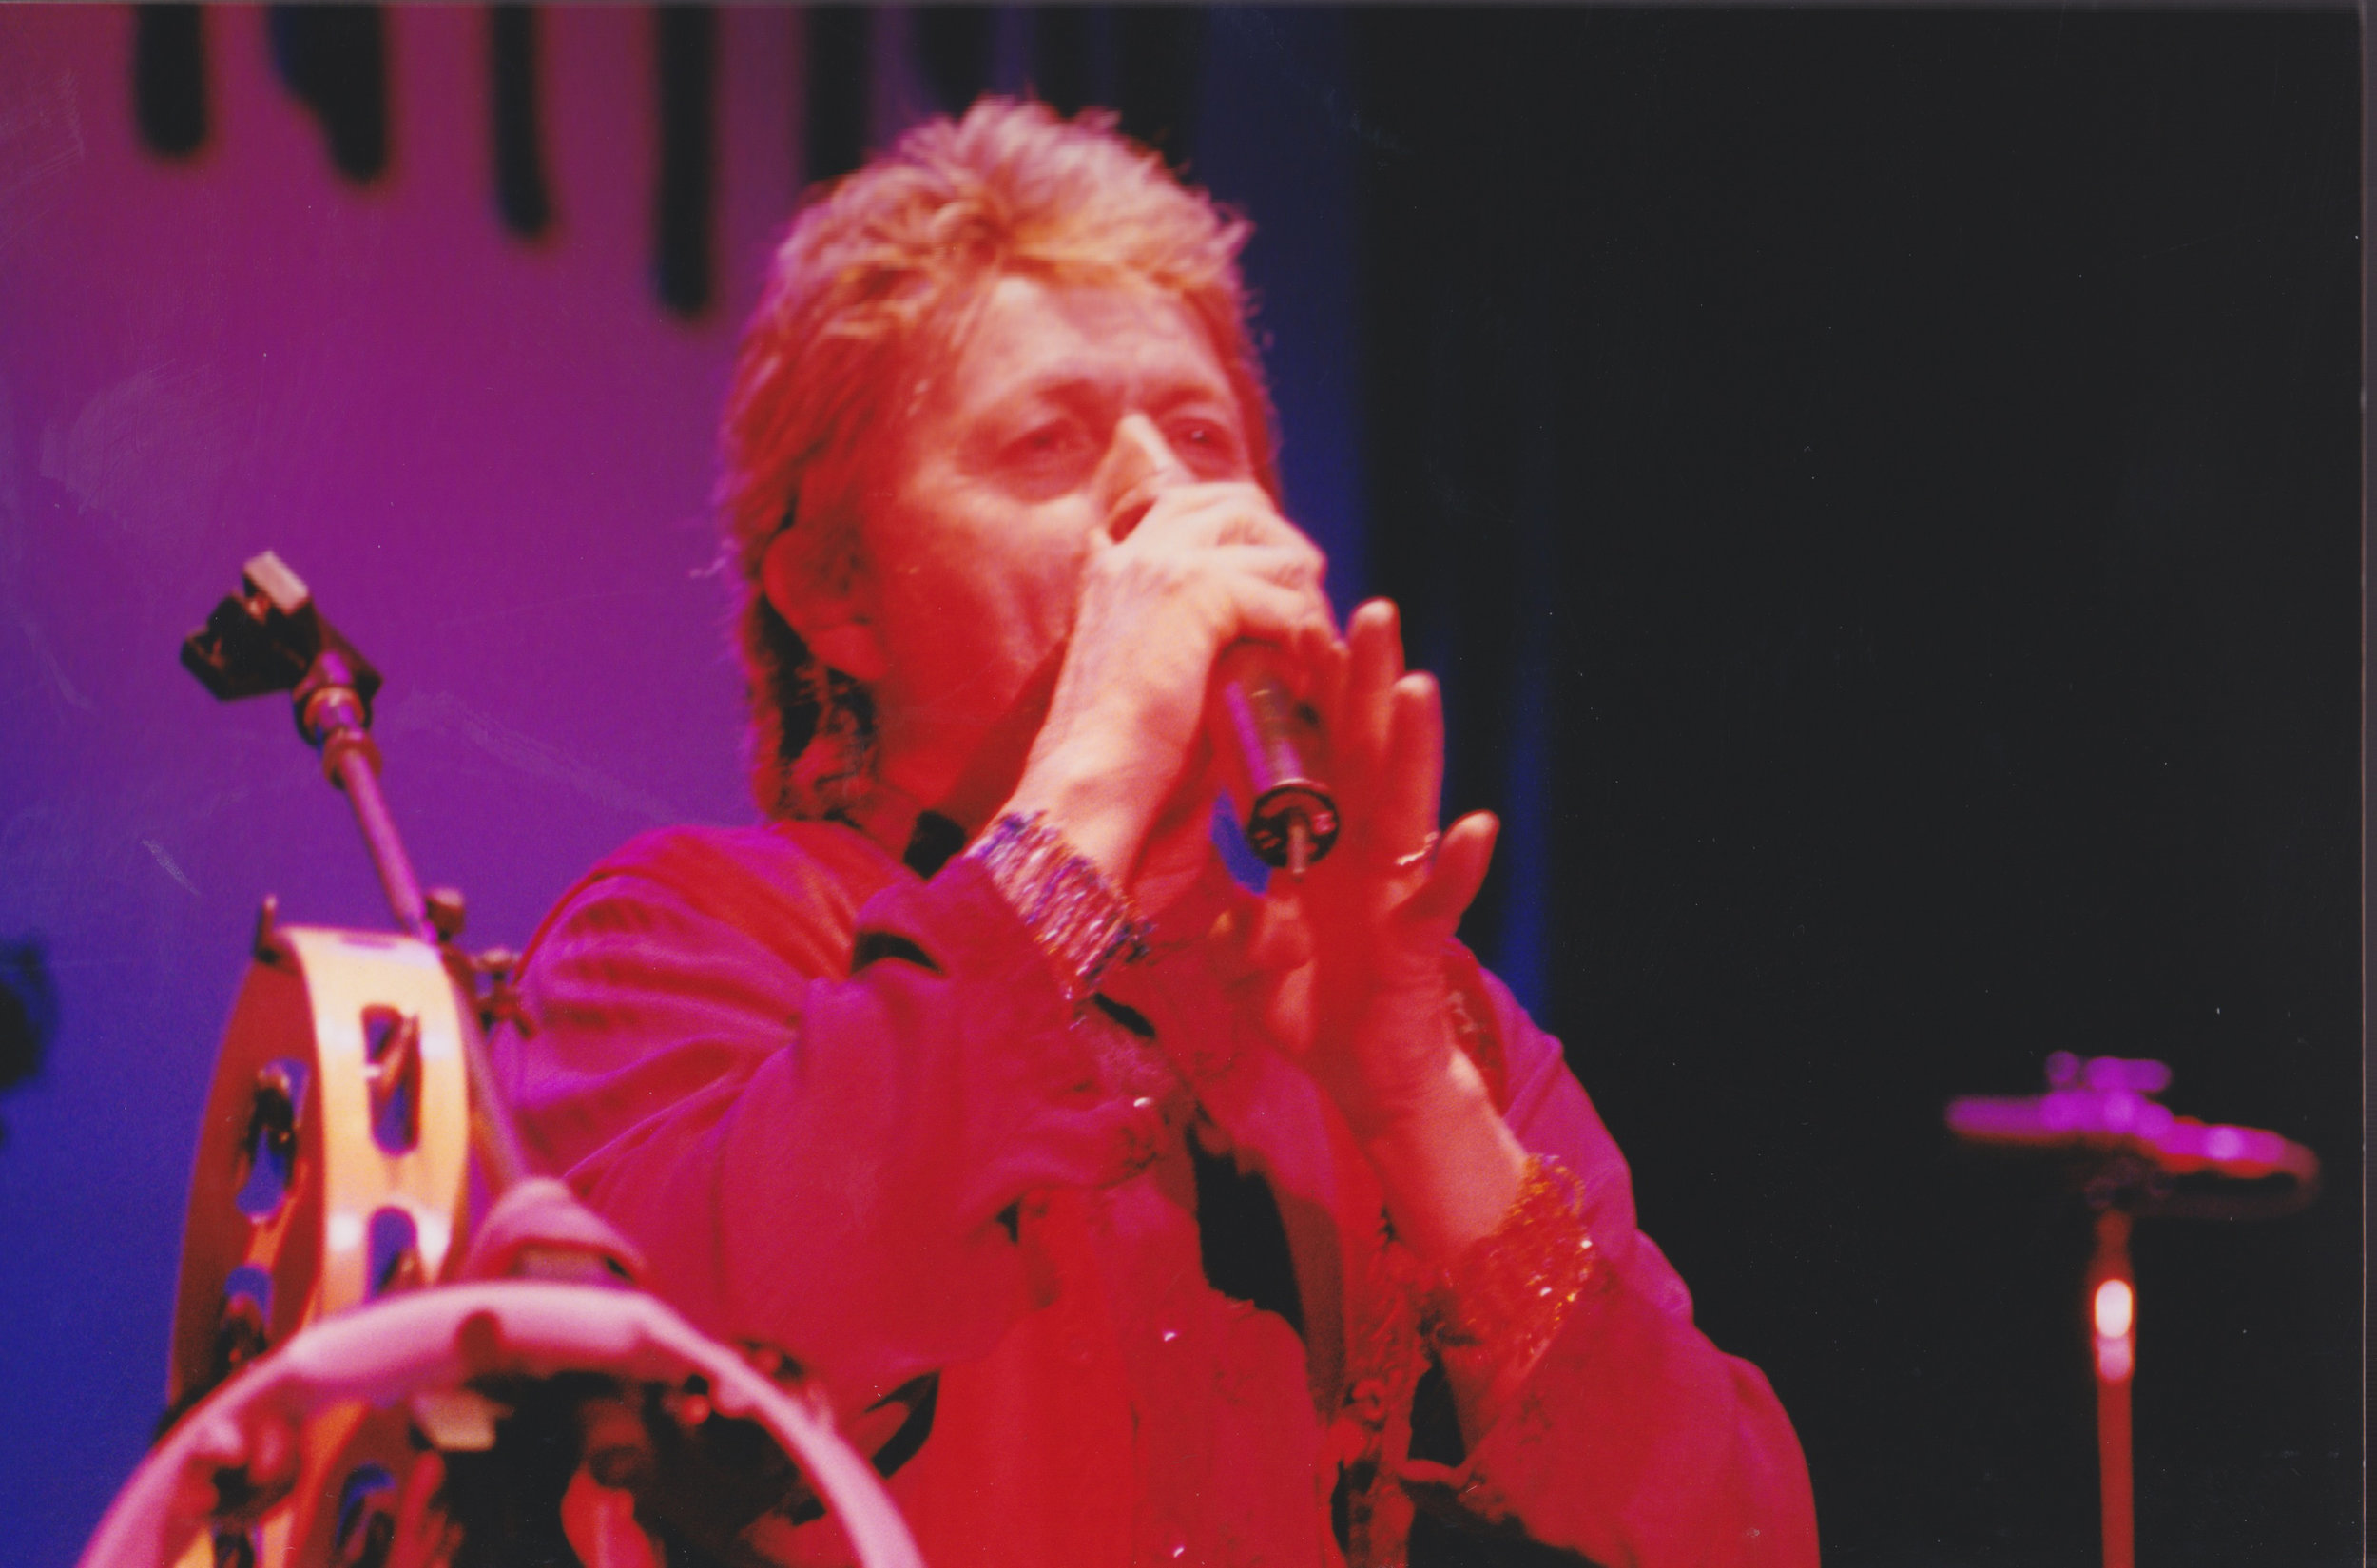 Jon Anderson. Photo by RD Mathers